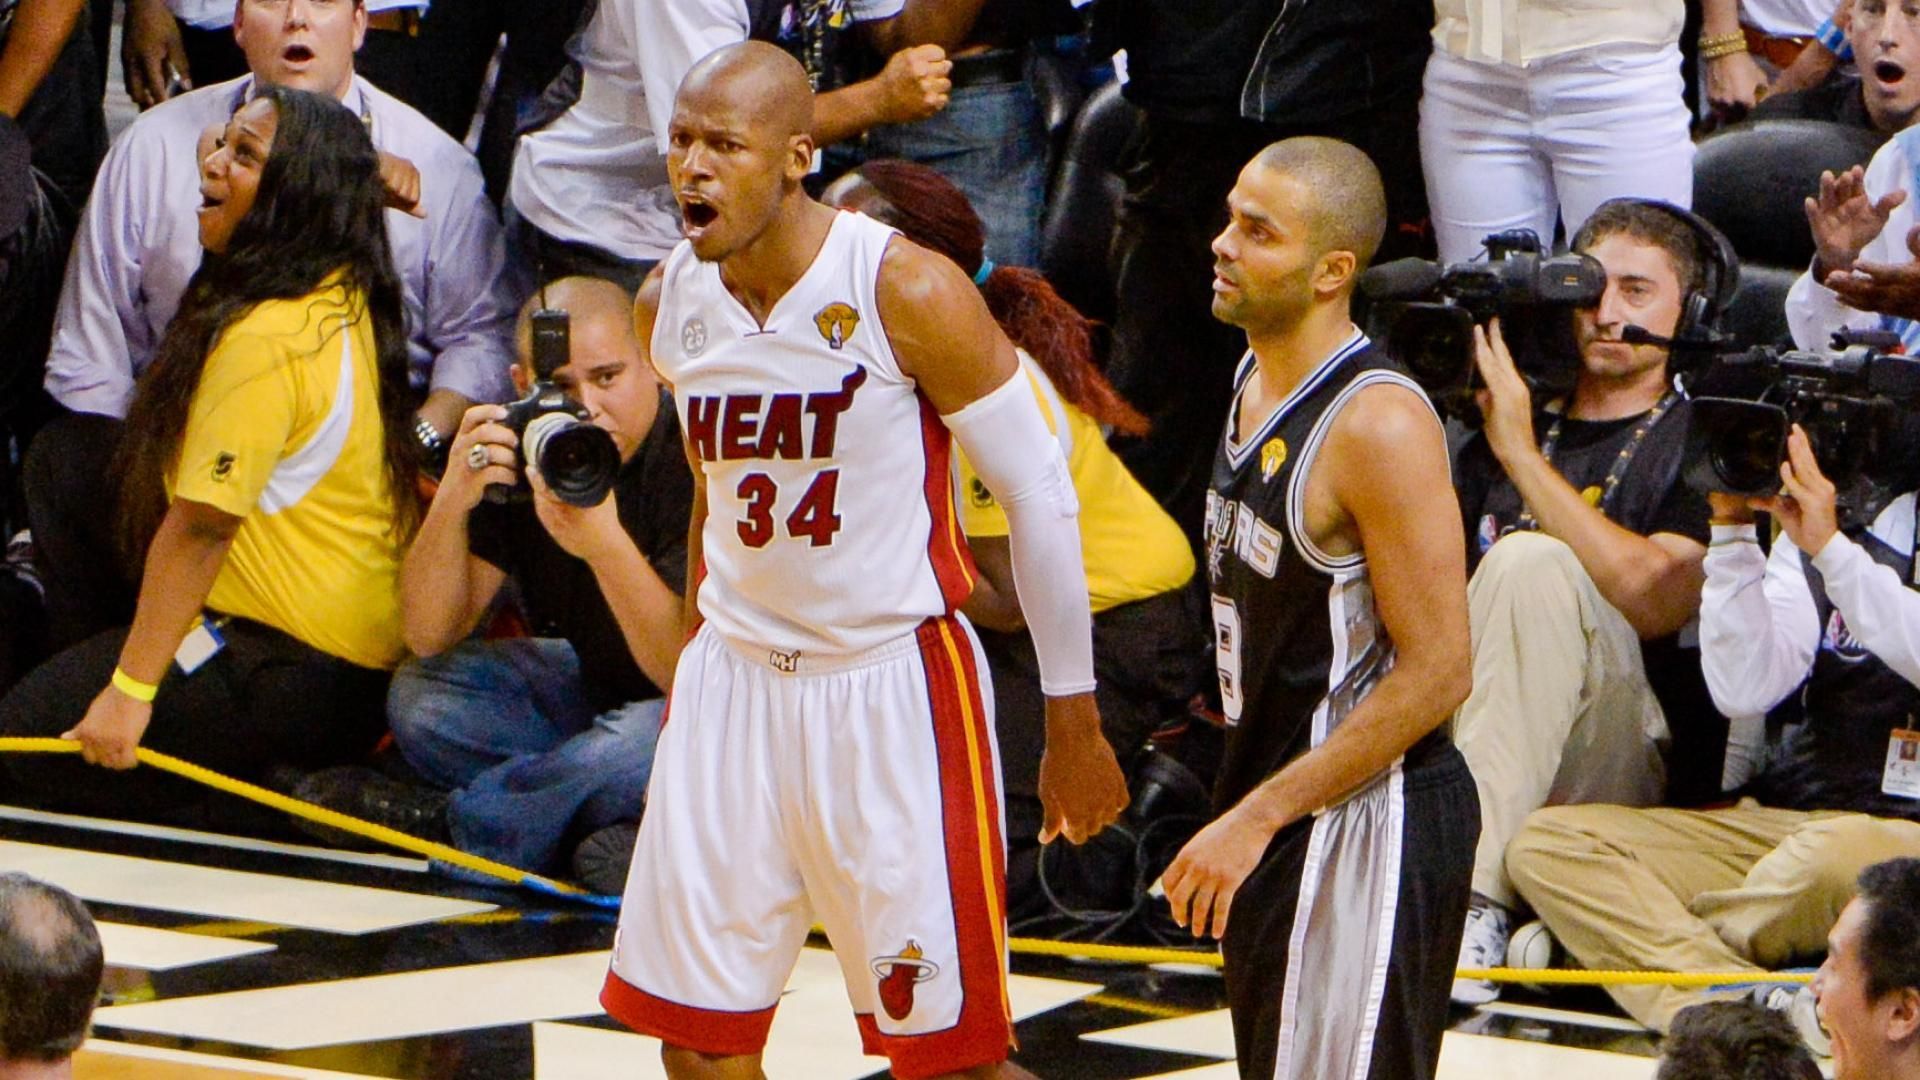 Top Moments: Allen's clutch 3-pointer saves day for Heat in 2013 ...